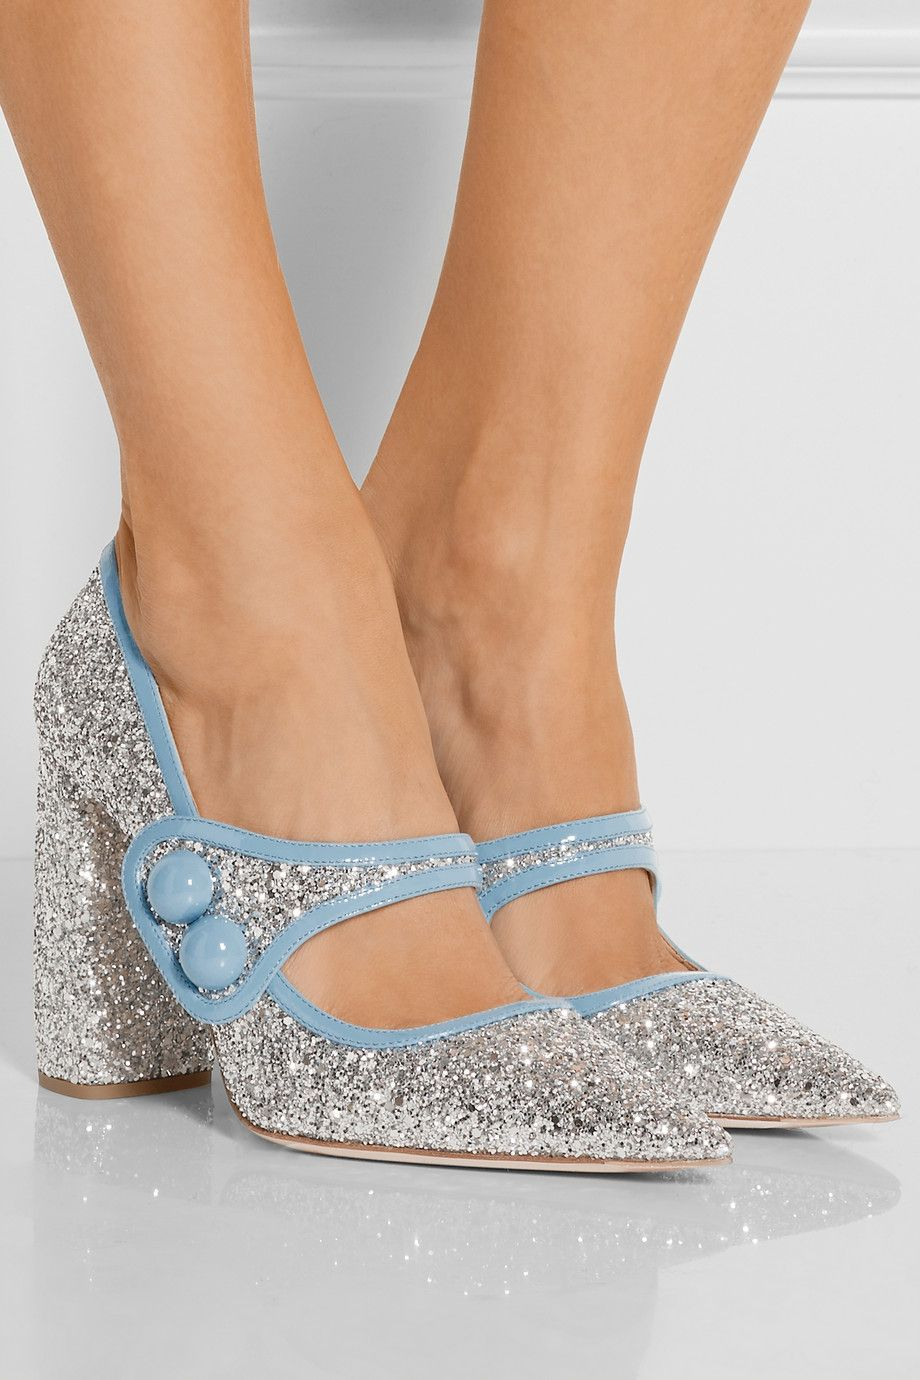 247762e84dc Miu Miu - Glittered patent-leather pumps